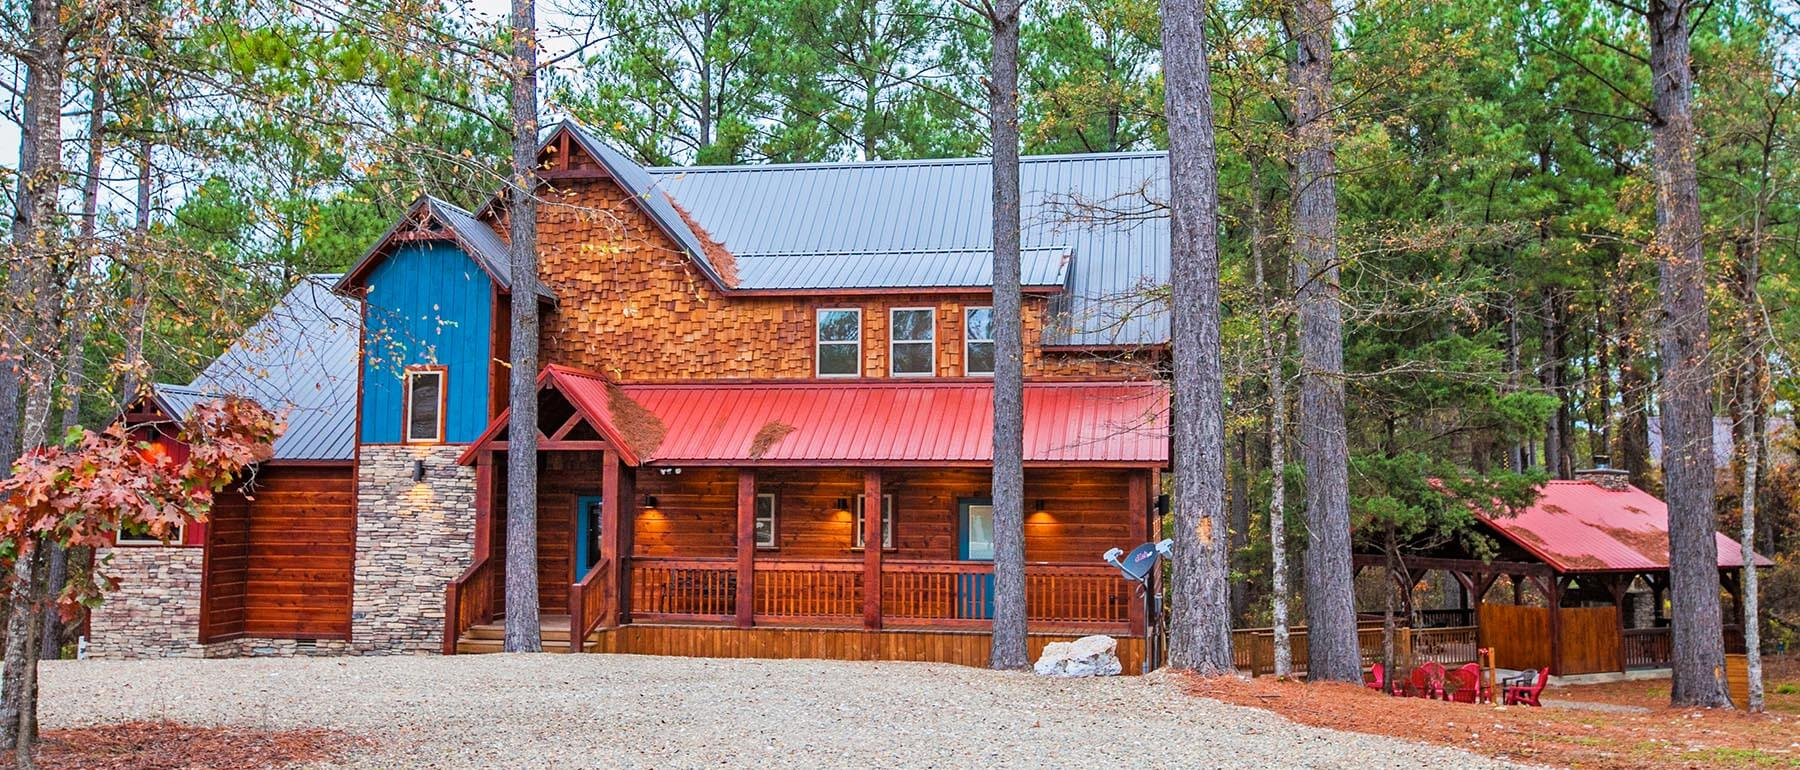 home exterior in woods.